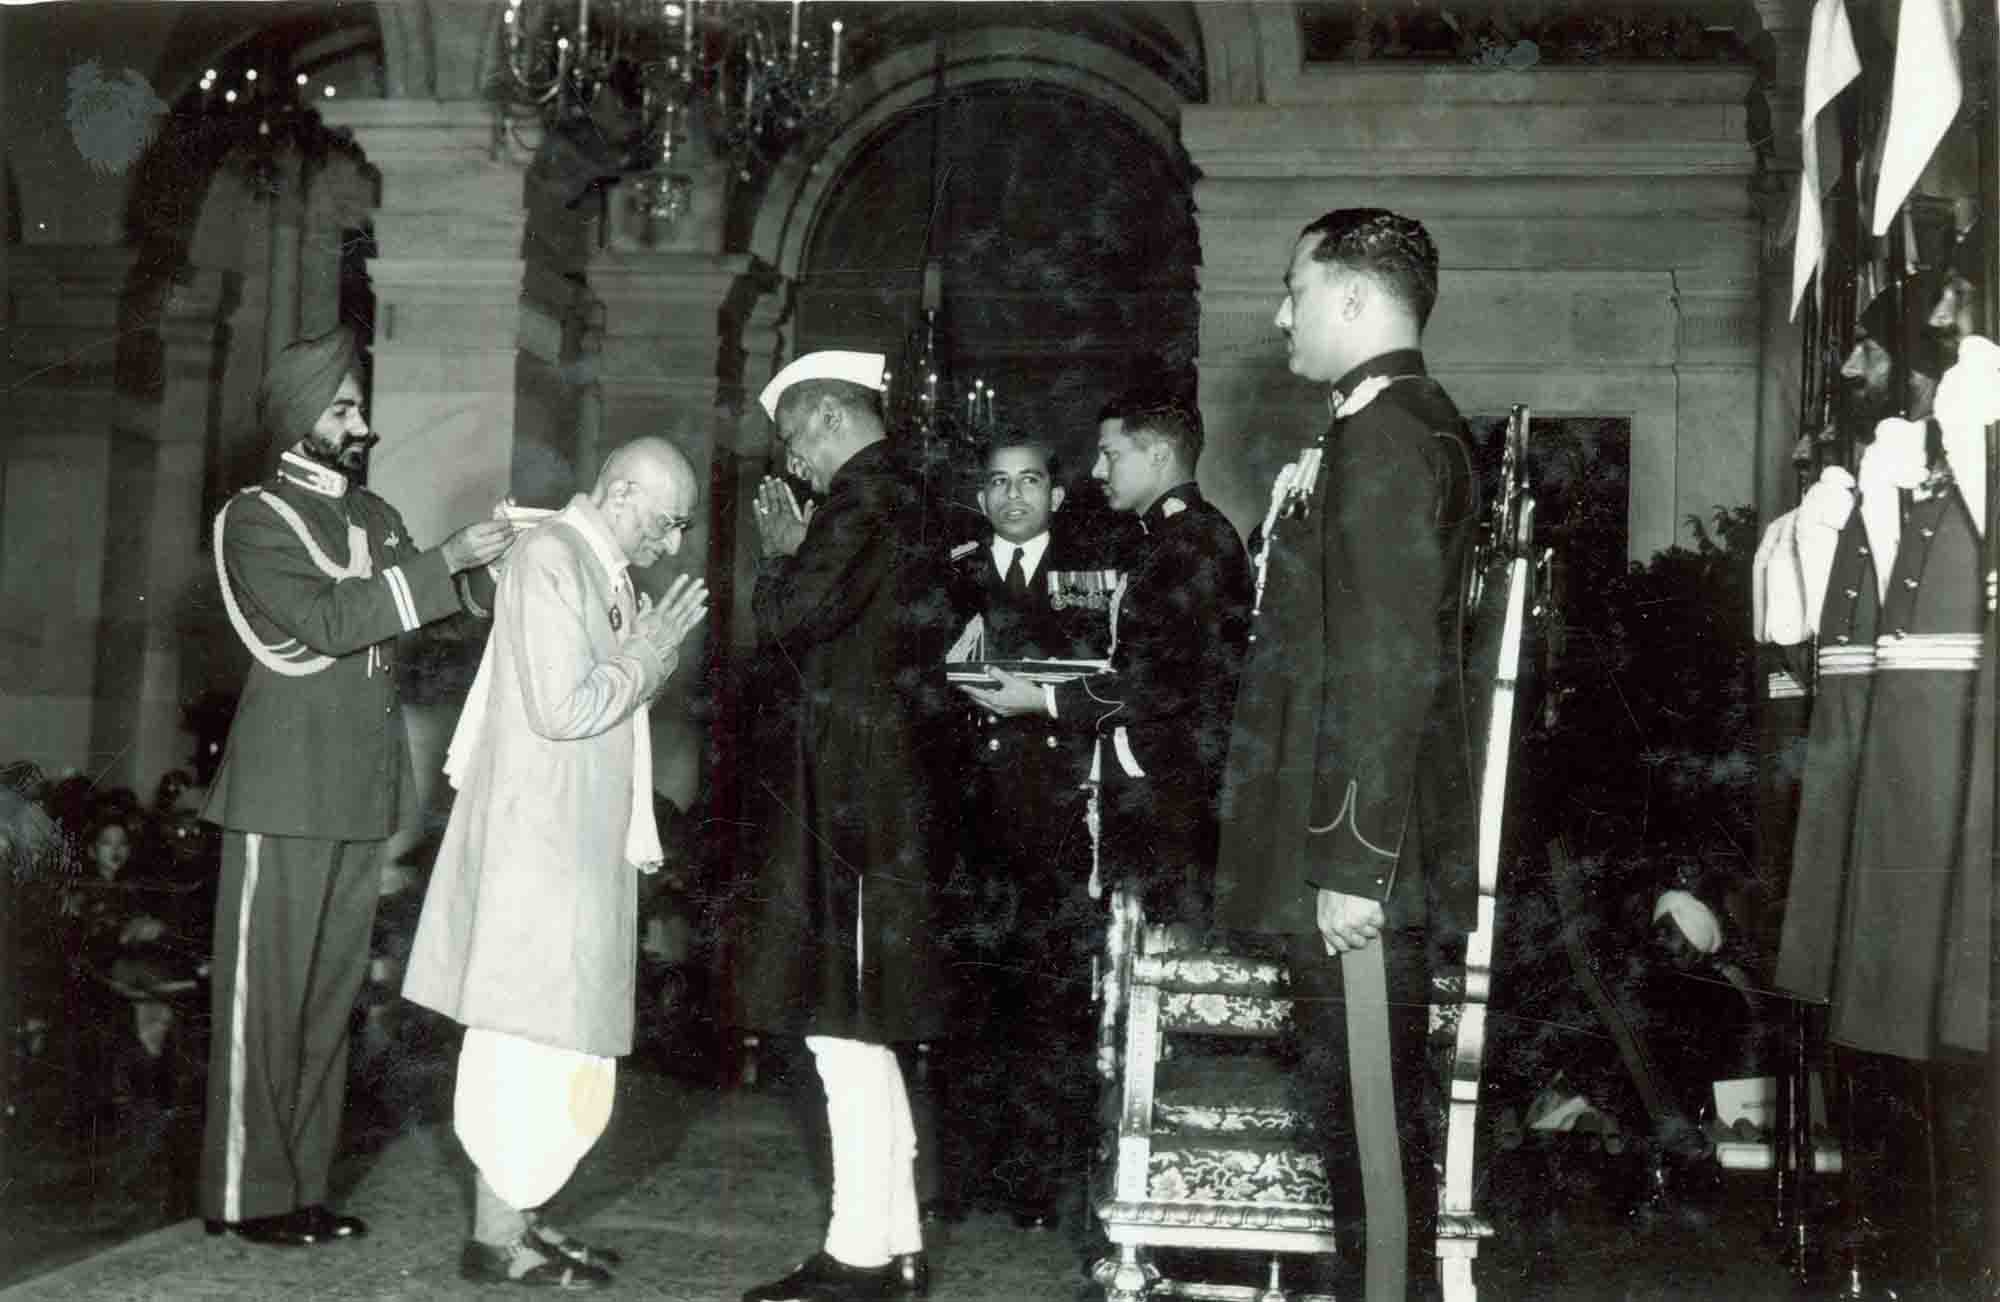 C Rajagopalachari receiving the Bharat Ratna from President Rajendra Prasad. Image Courtesy: Rashtrapati Bhavan